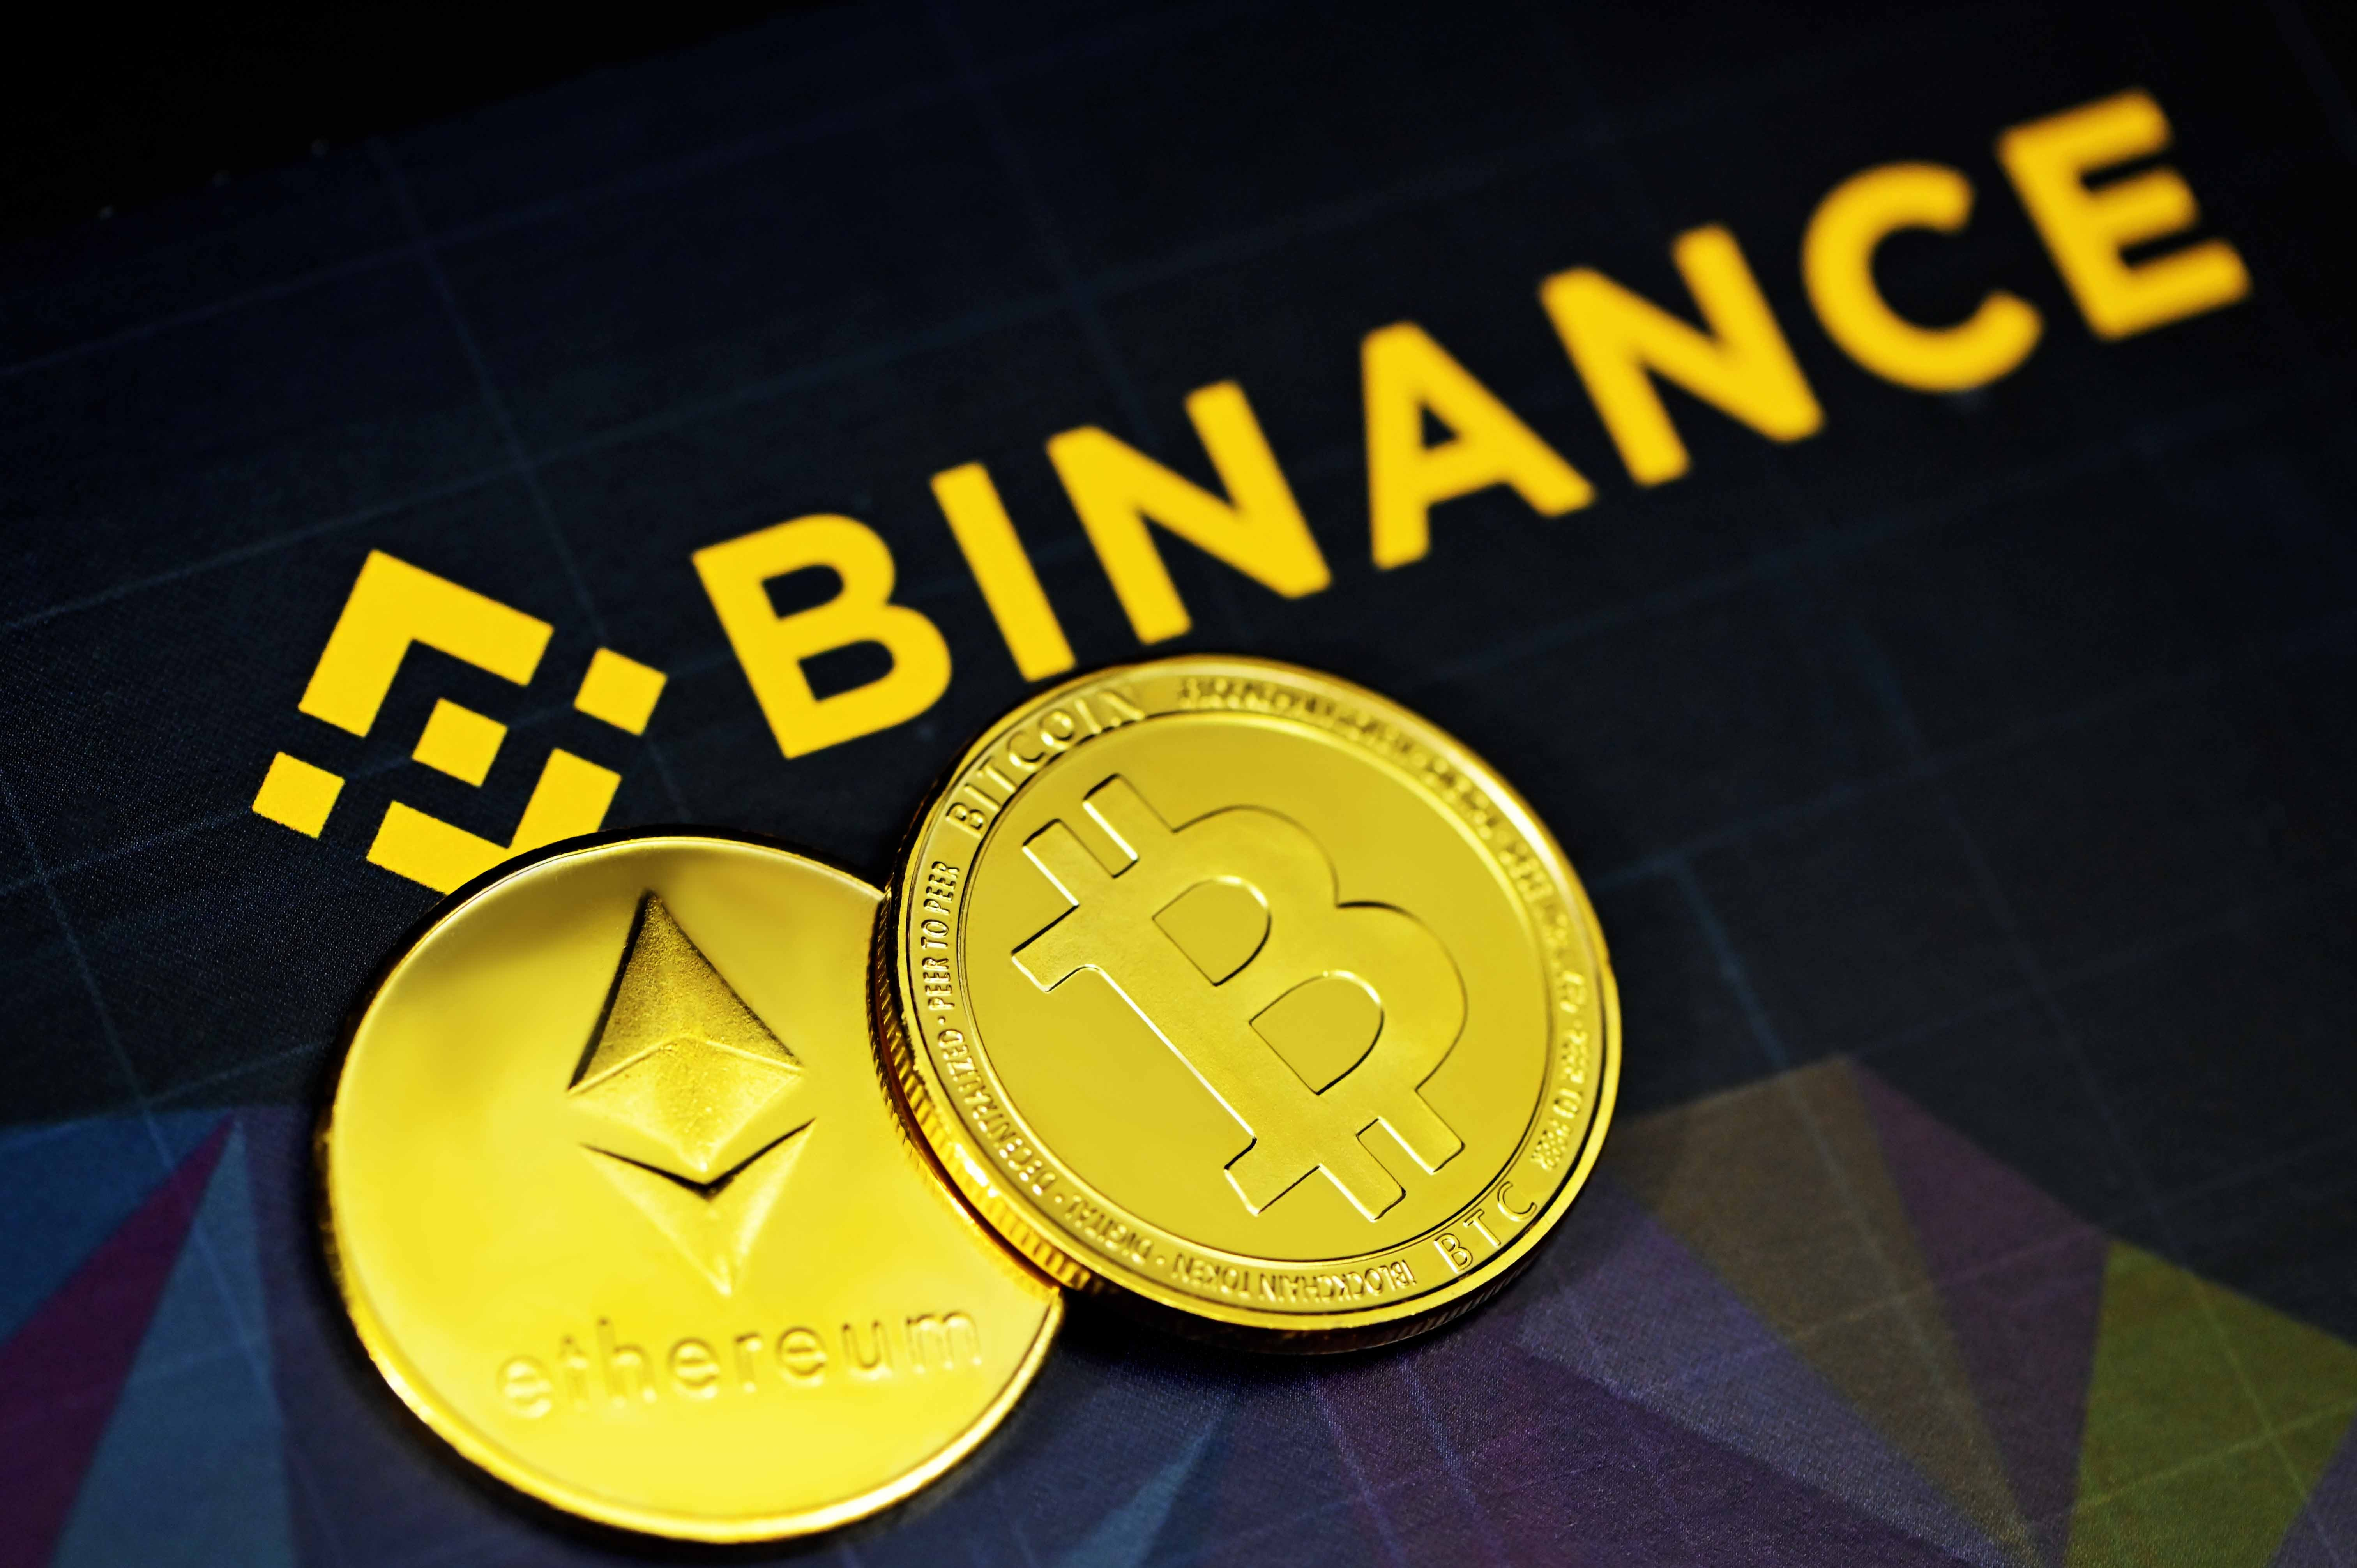 Crypto Exchange Binance Discontinues South Korean Trading Pairs And Language Support